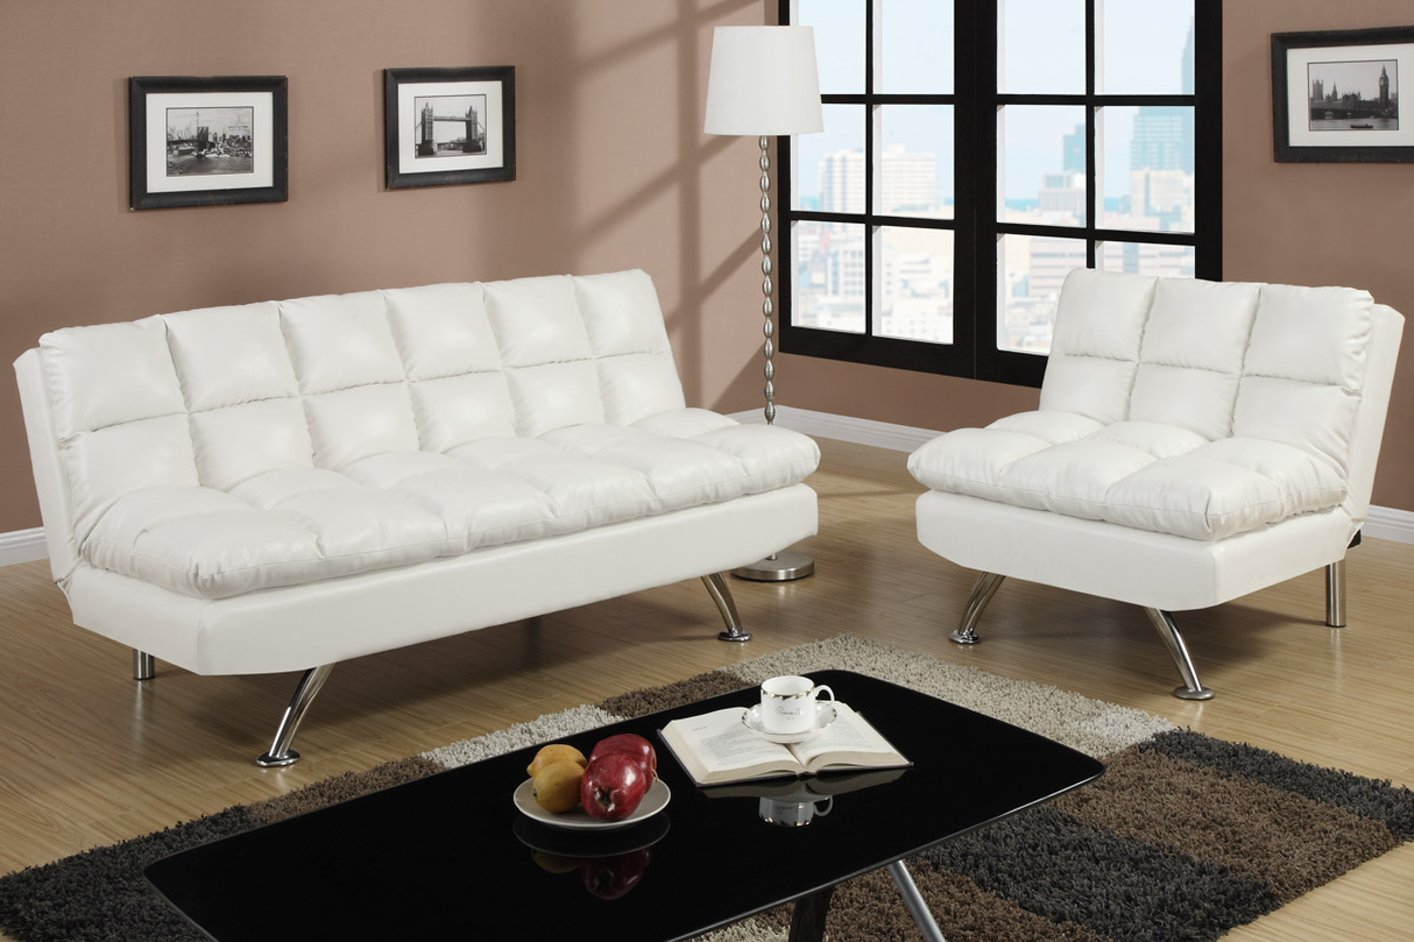 Poundex f7015 white twin size leather sofa bed steal a for White divan bed